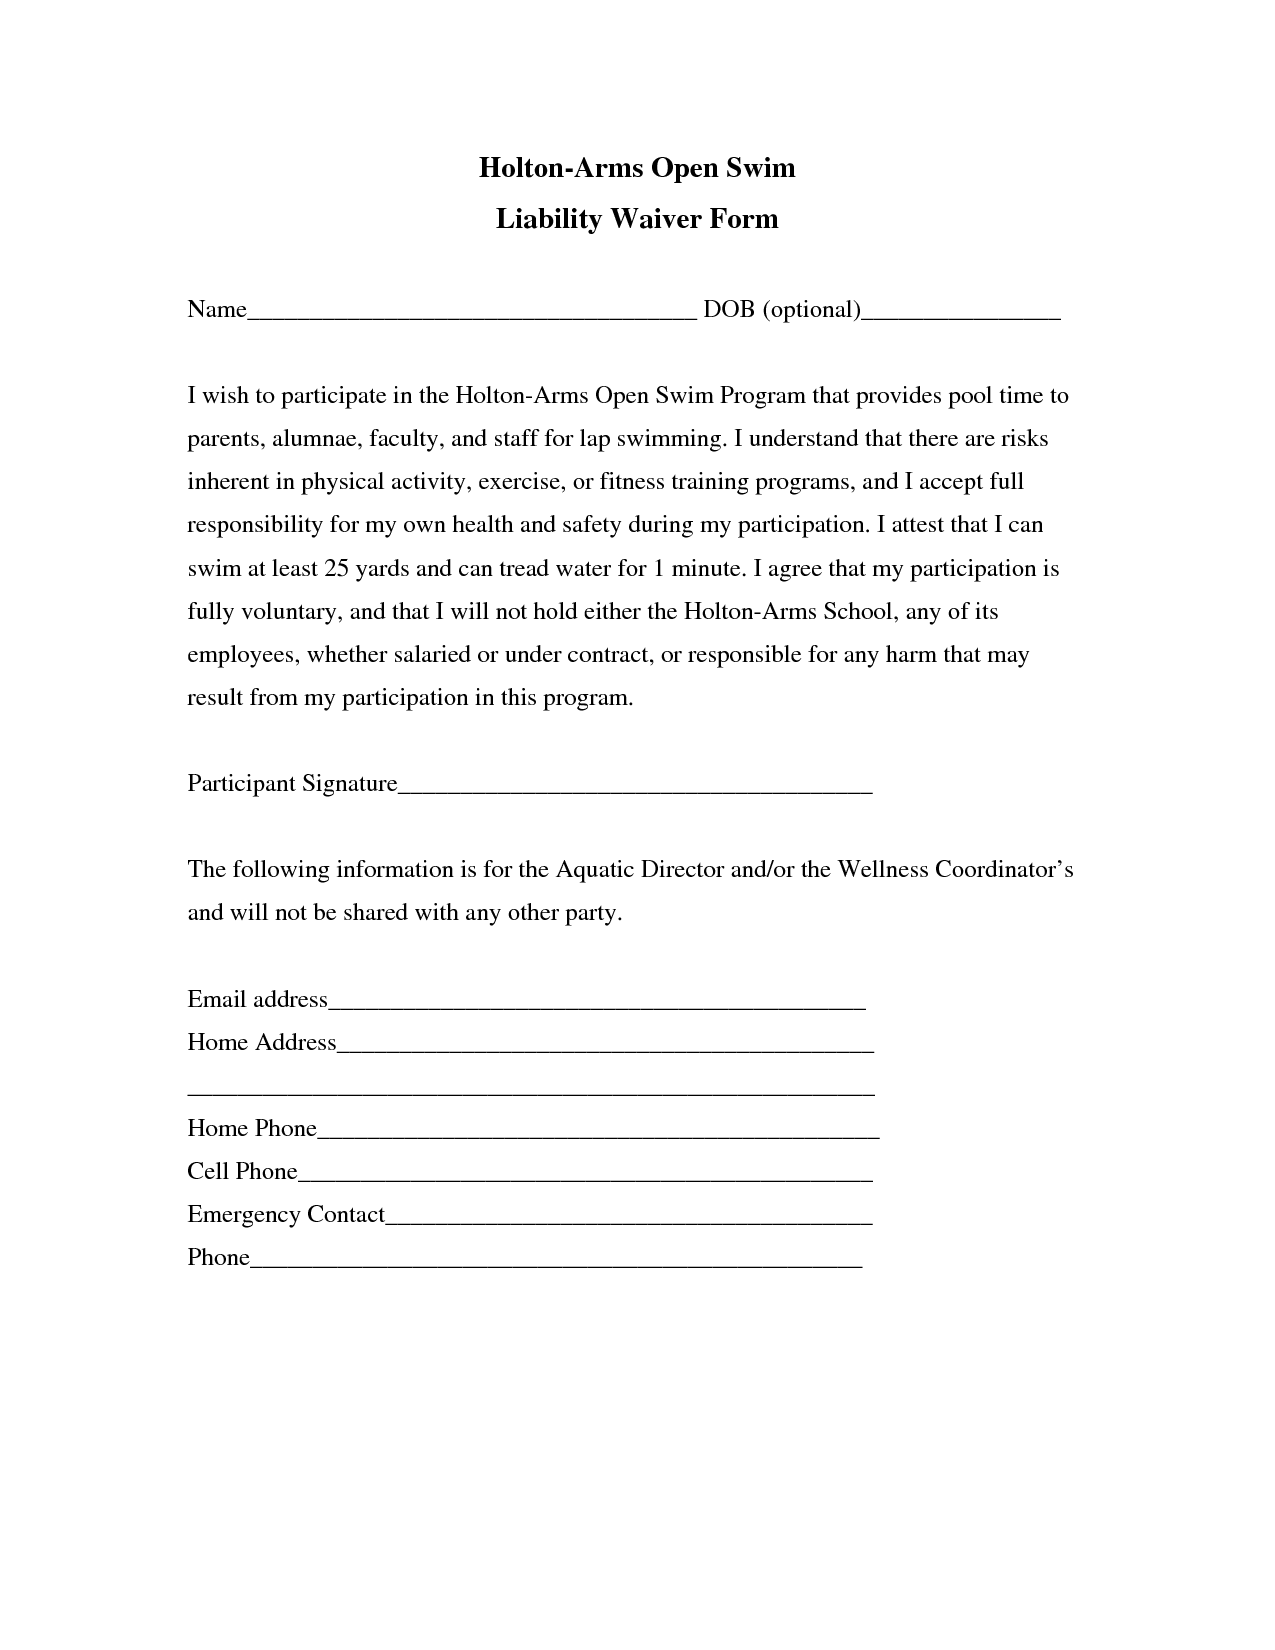 Awesome Fieldstation.co Idea Liability Release Form Template Free